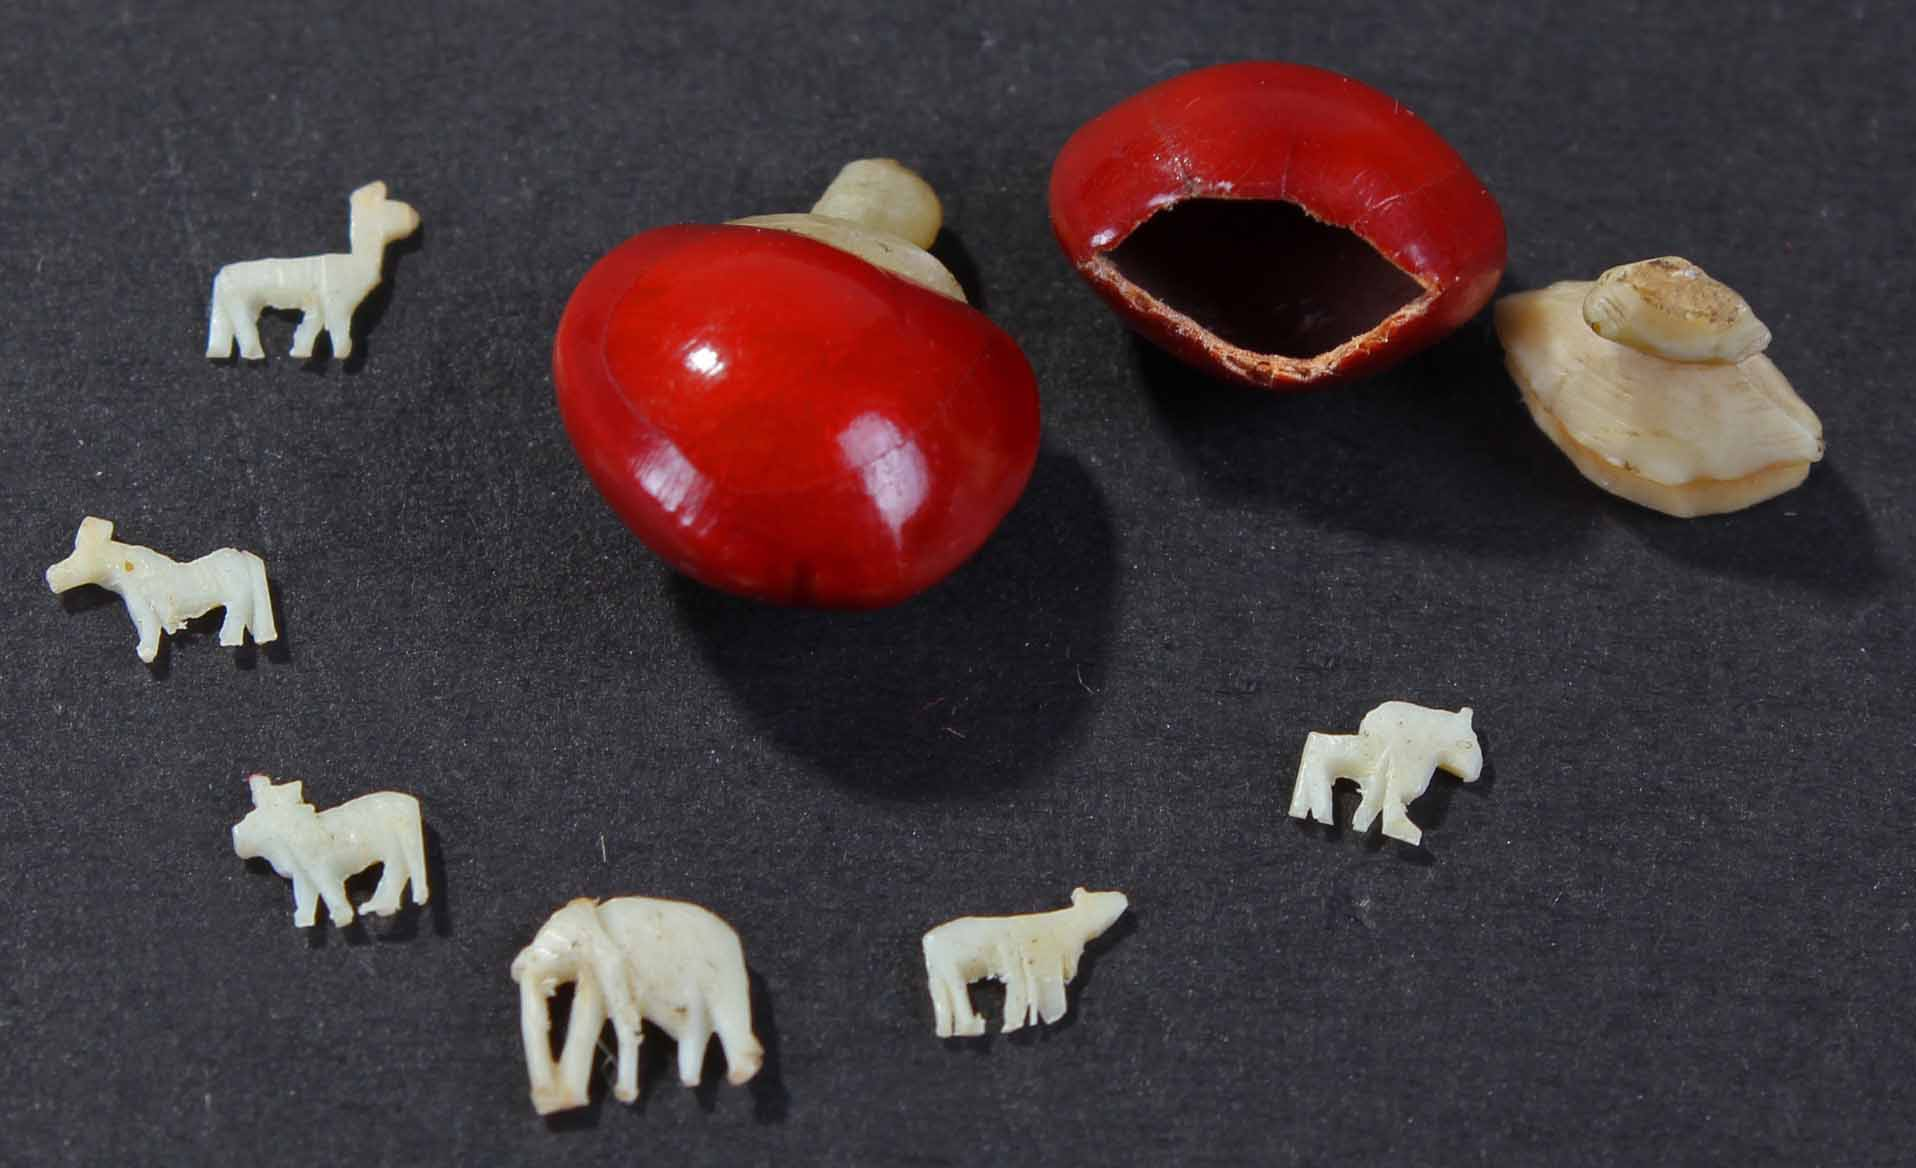 two bean shells with contents of miniature carved ivory